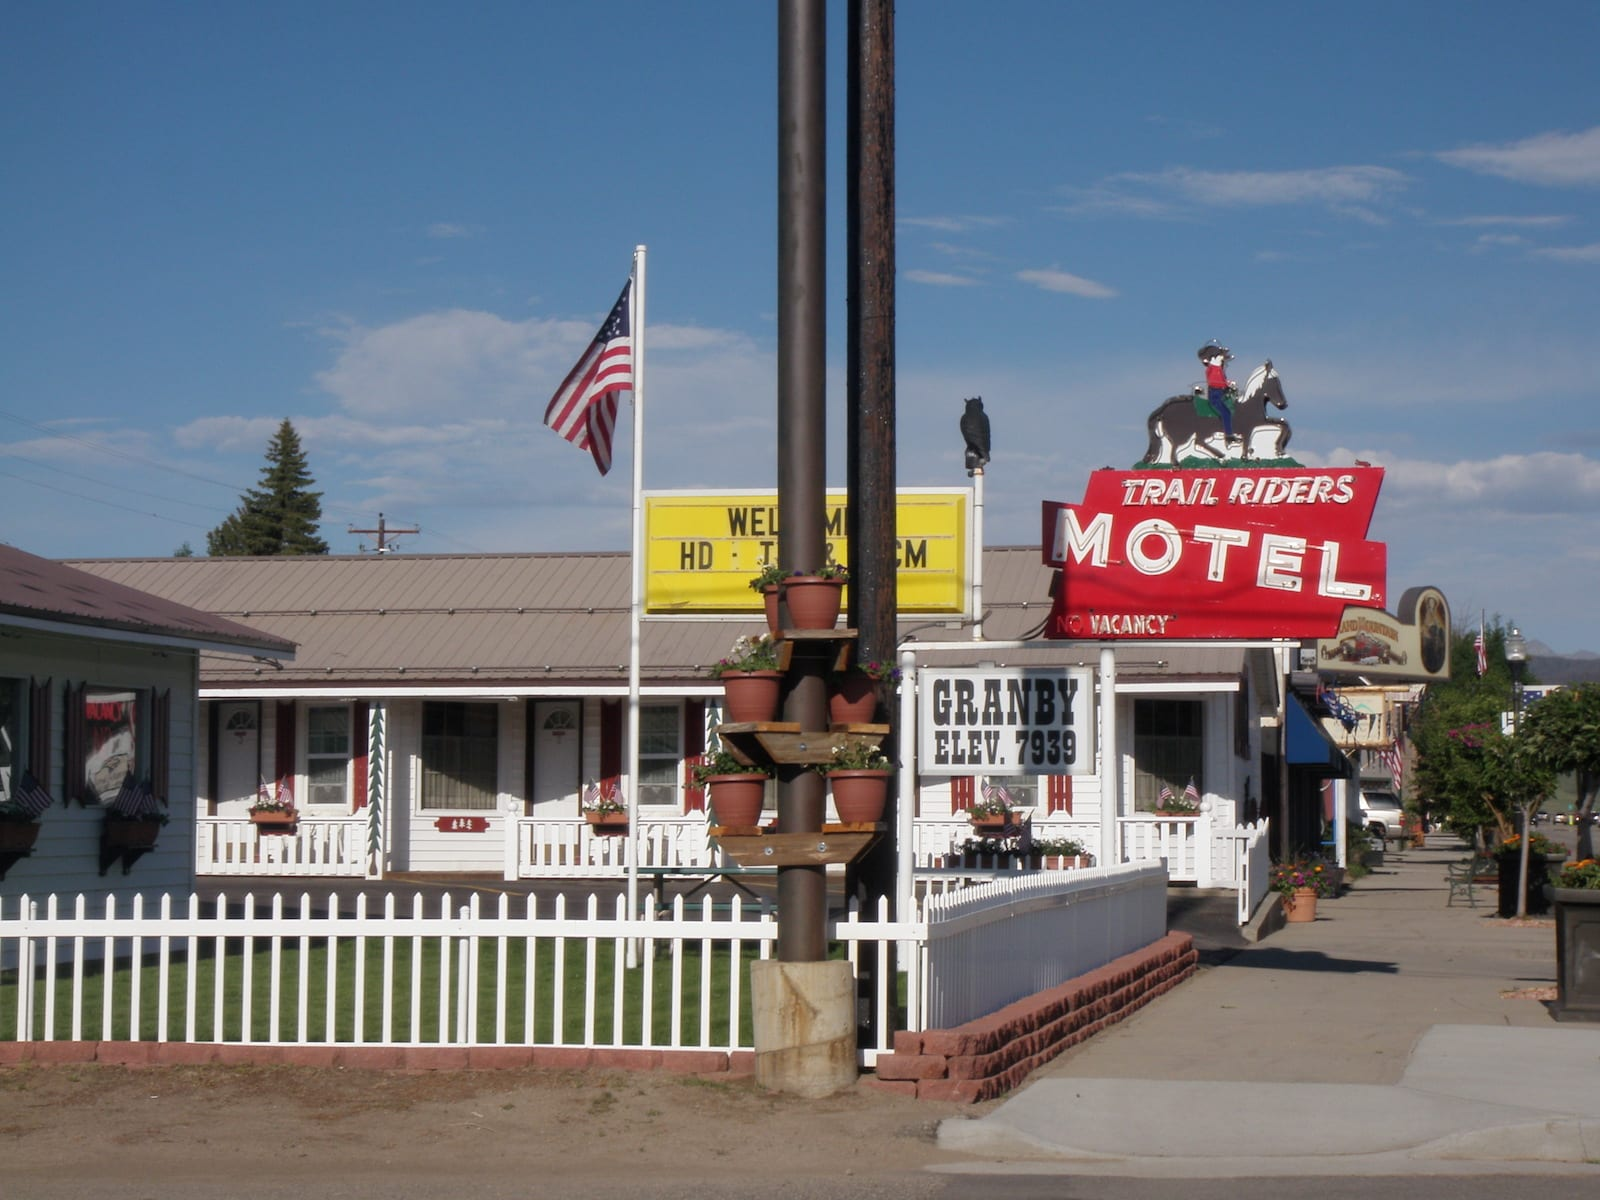 Trail Riders Motel, Colorado